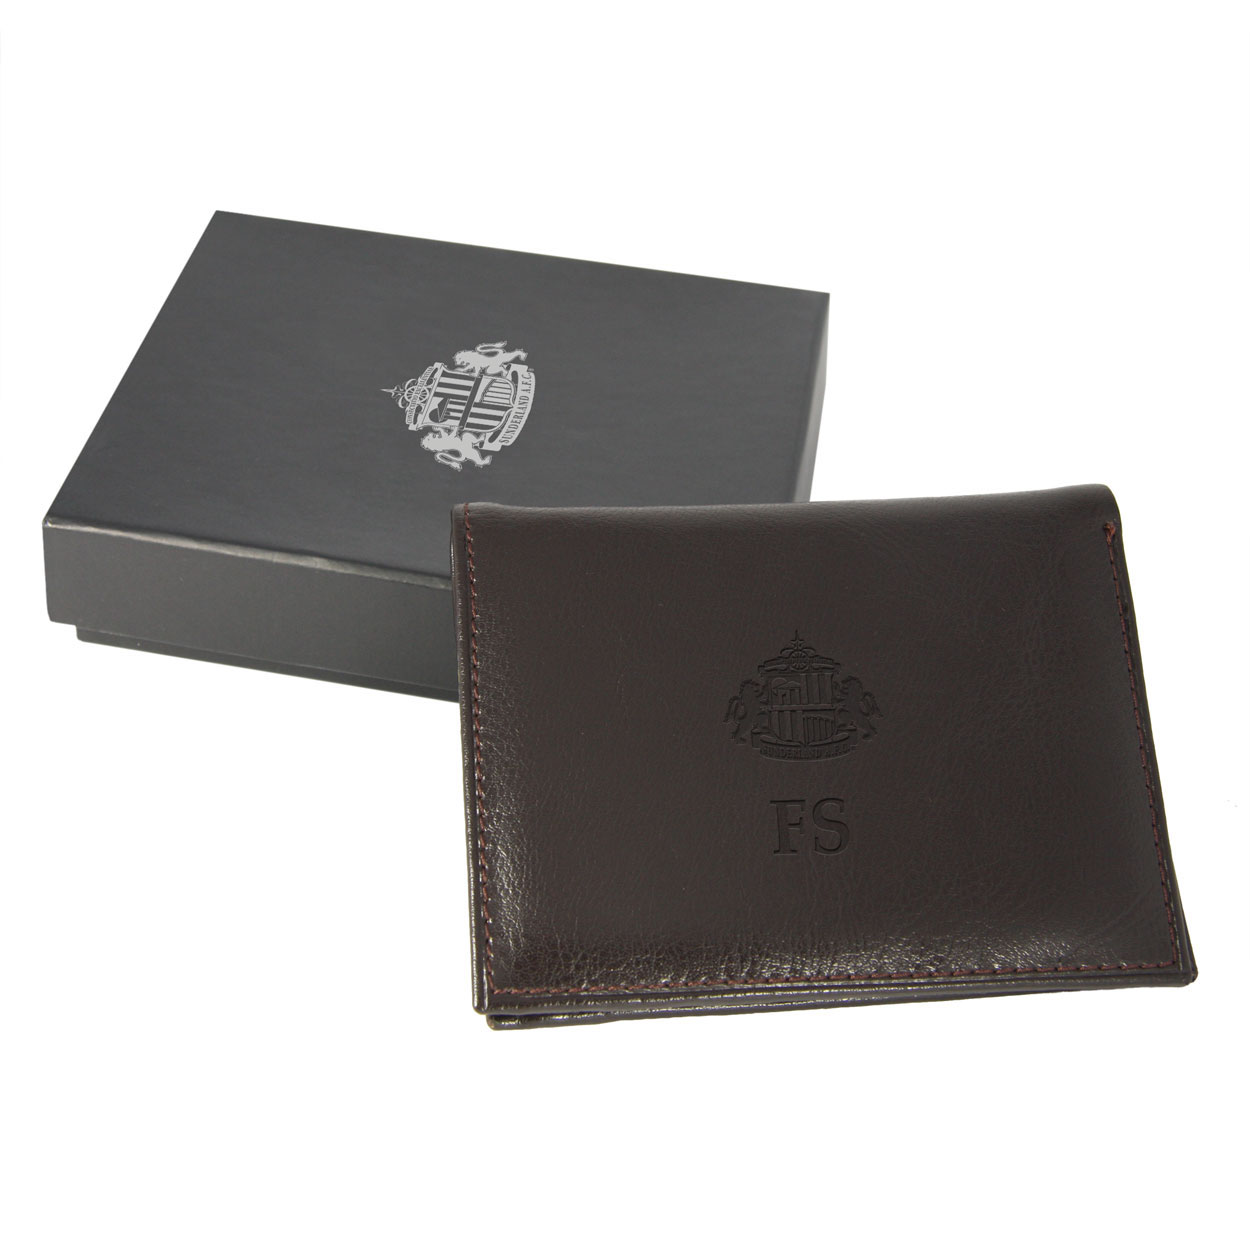 Sunderland Personalised Wallet Brown